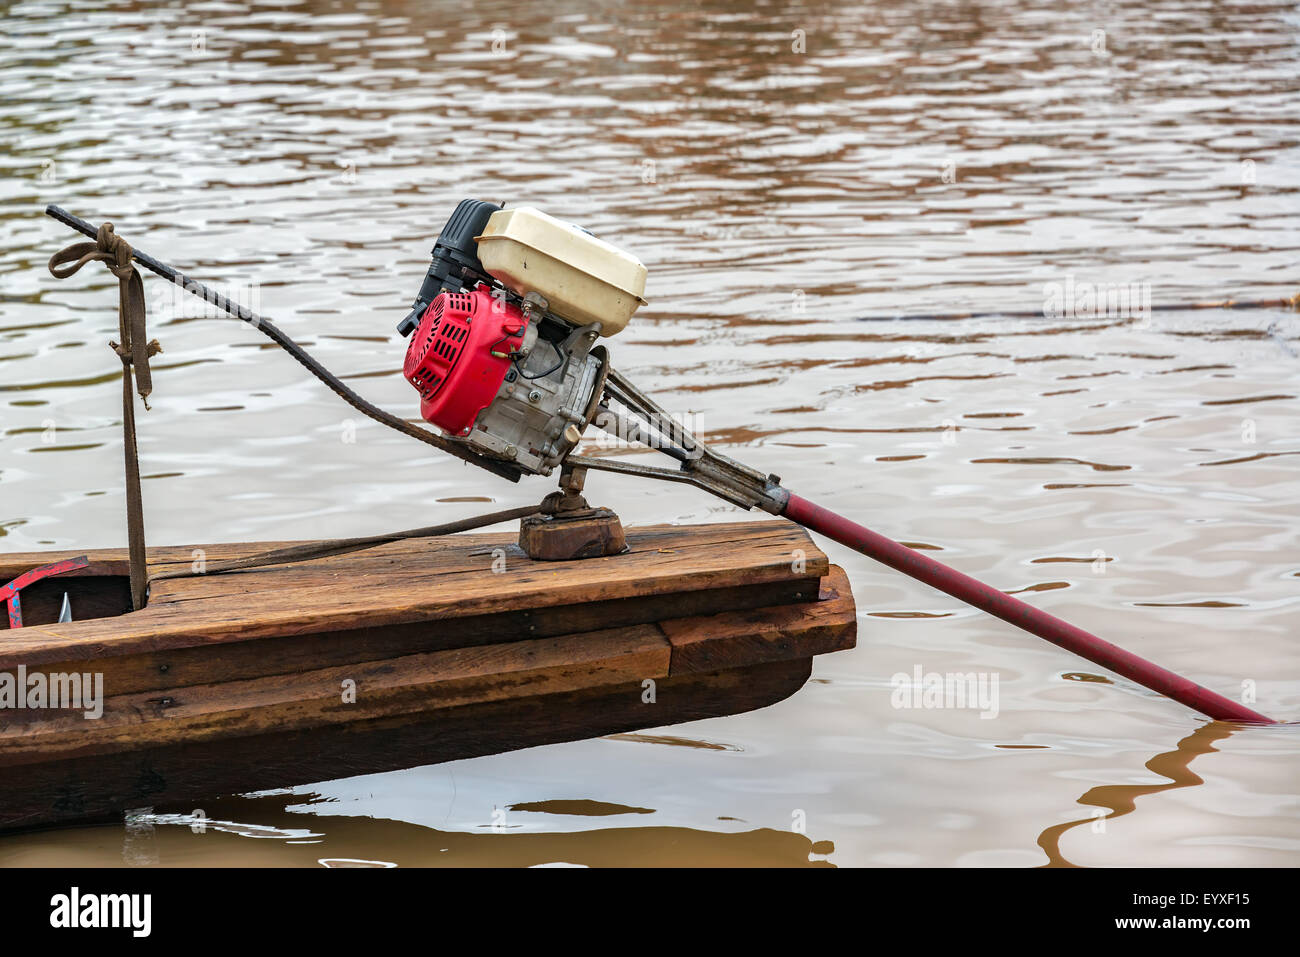 Motor on a wooden canoe near Iquitos, Peru - Stock Image